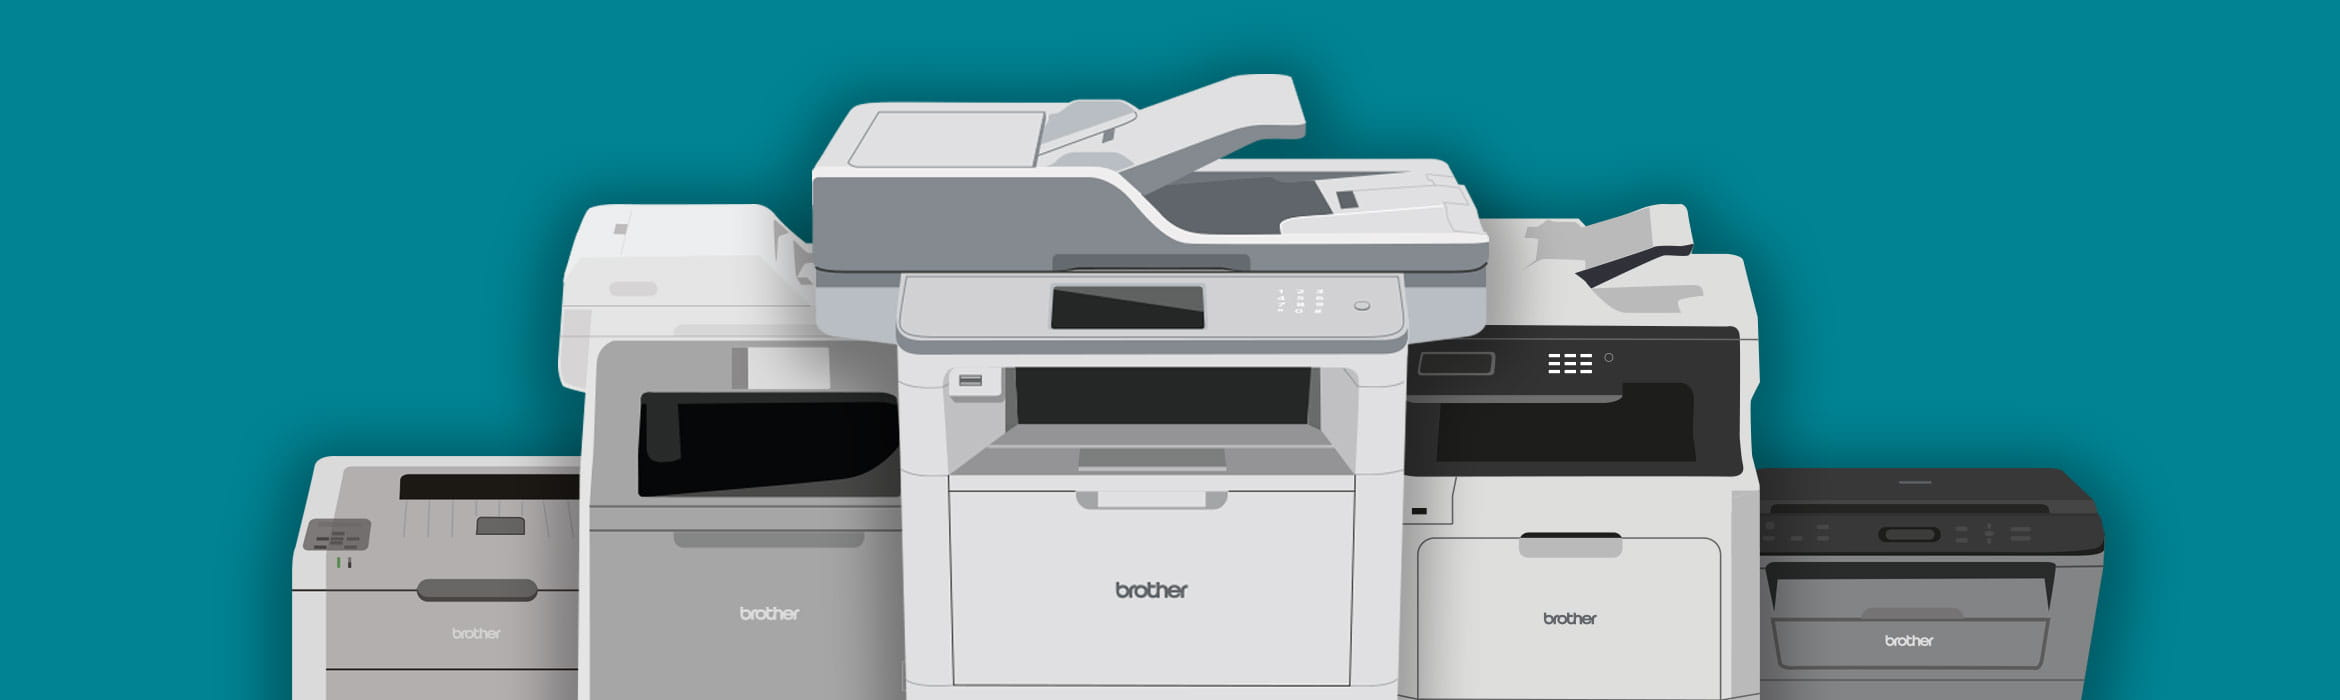 A series of Brother printers